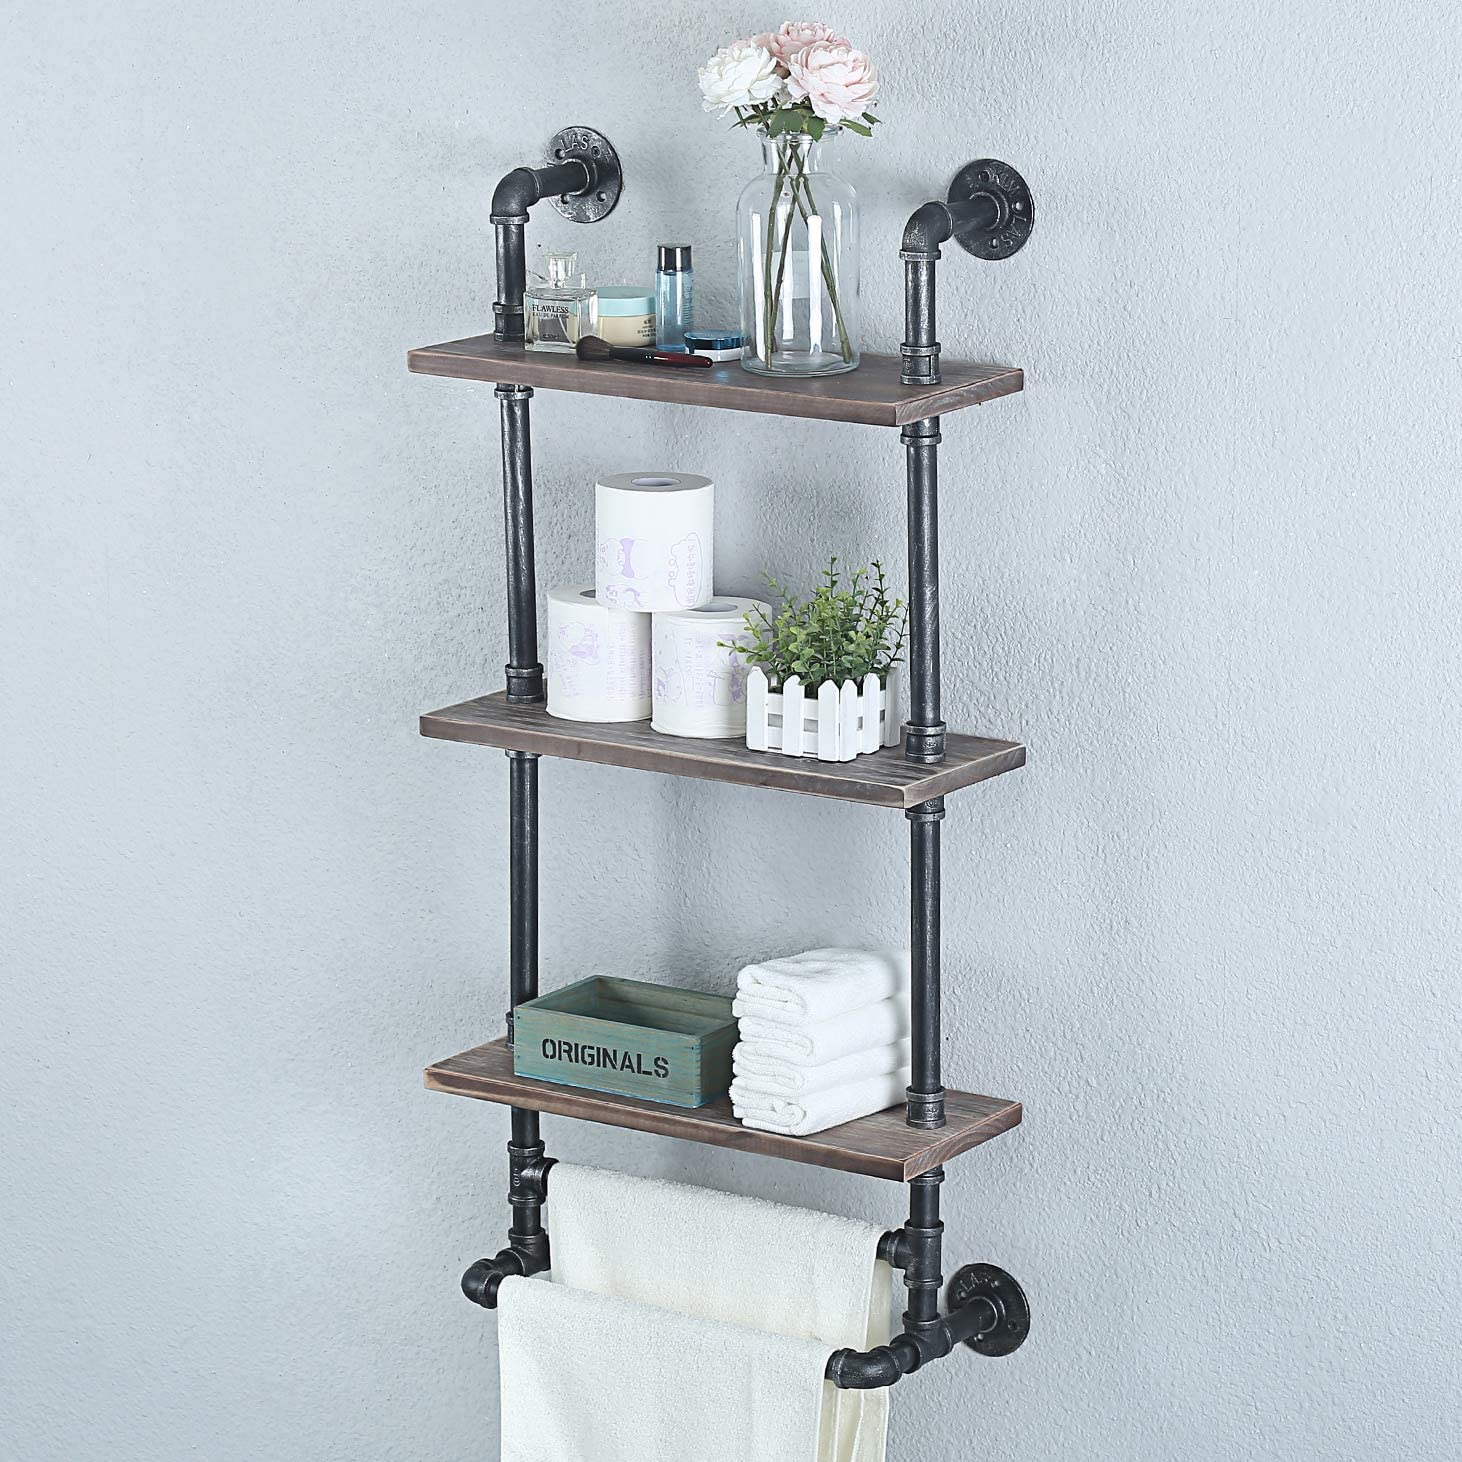 Womio Industrial Pipe Bathroom Shelves Wall Mounted,19.7in Rustic Wall Decor Farmhouse,3 Tier Towel Rack with 2 Towel Bar,Metal Floating Shelves Towel Holder,Wall Shelf Over Toilet